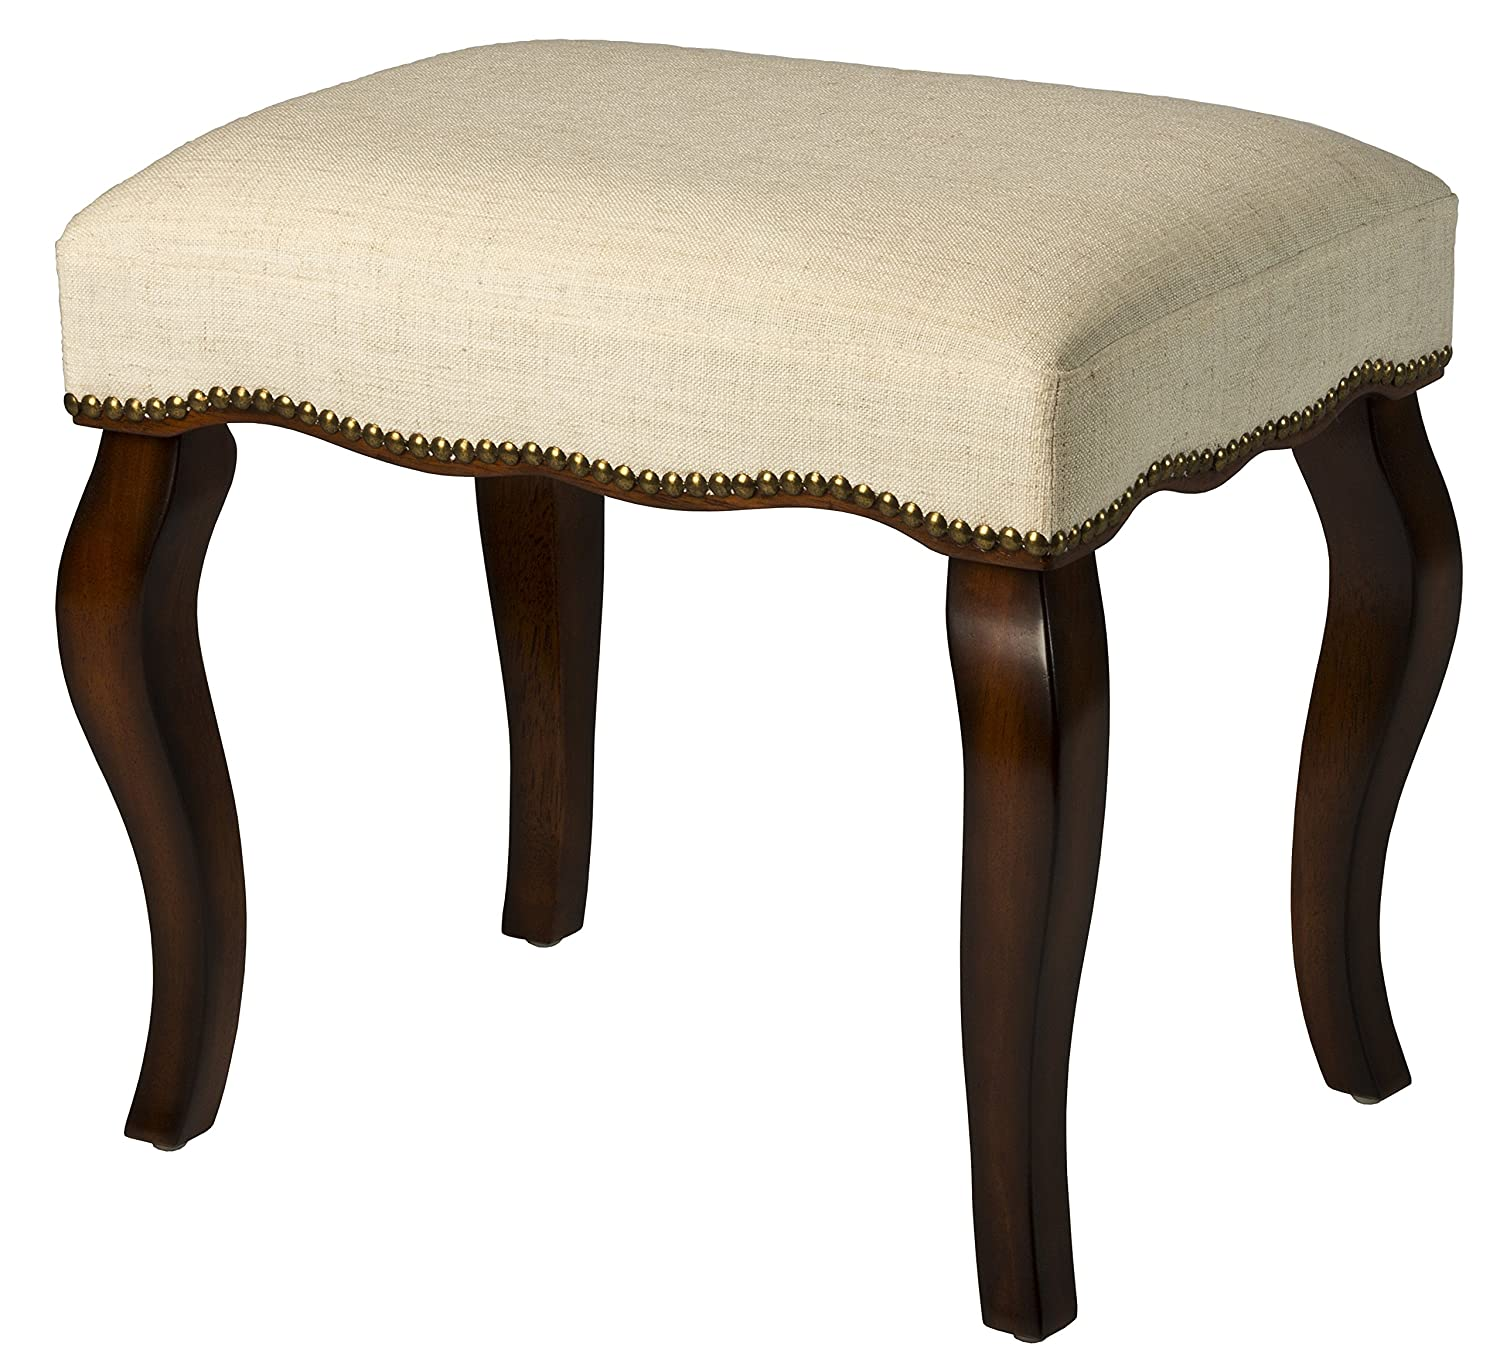 Hillsdale Furniture 50962 Hamilton Backless Vanity Stool, Burnished Oak with Cream Fabric